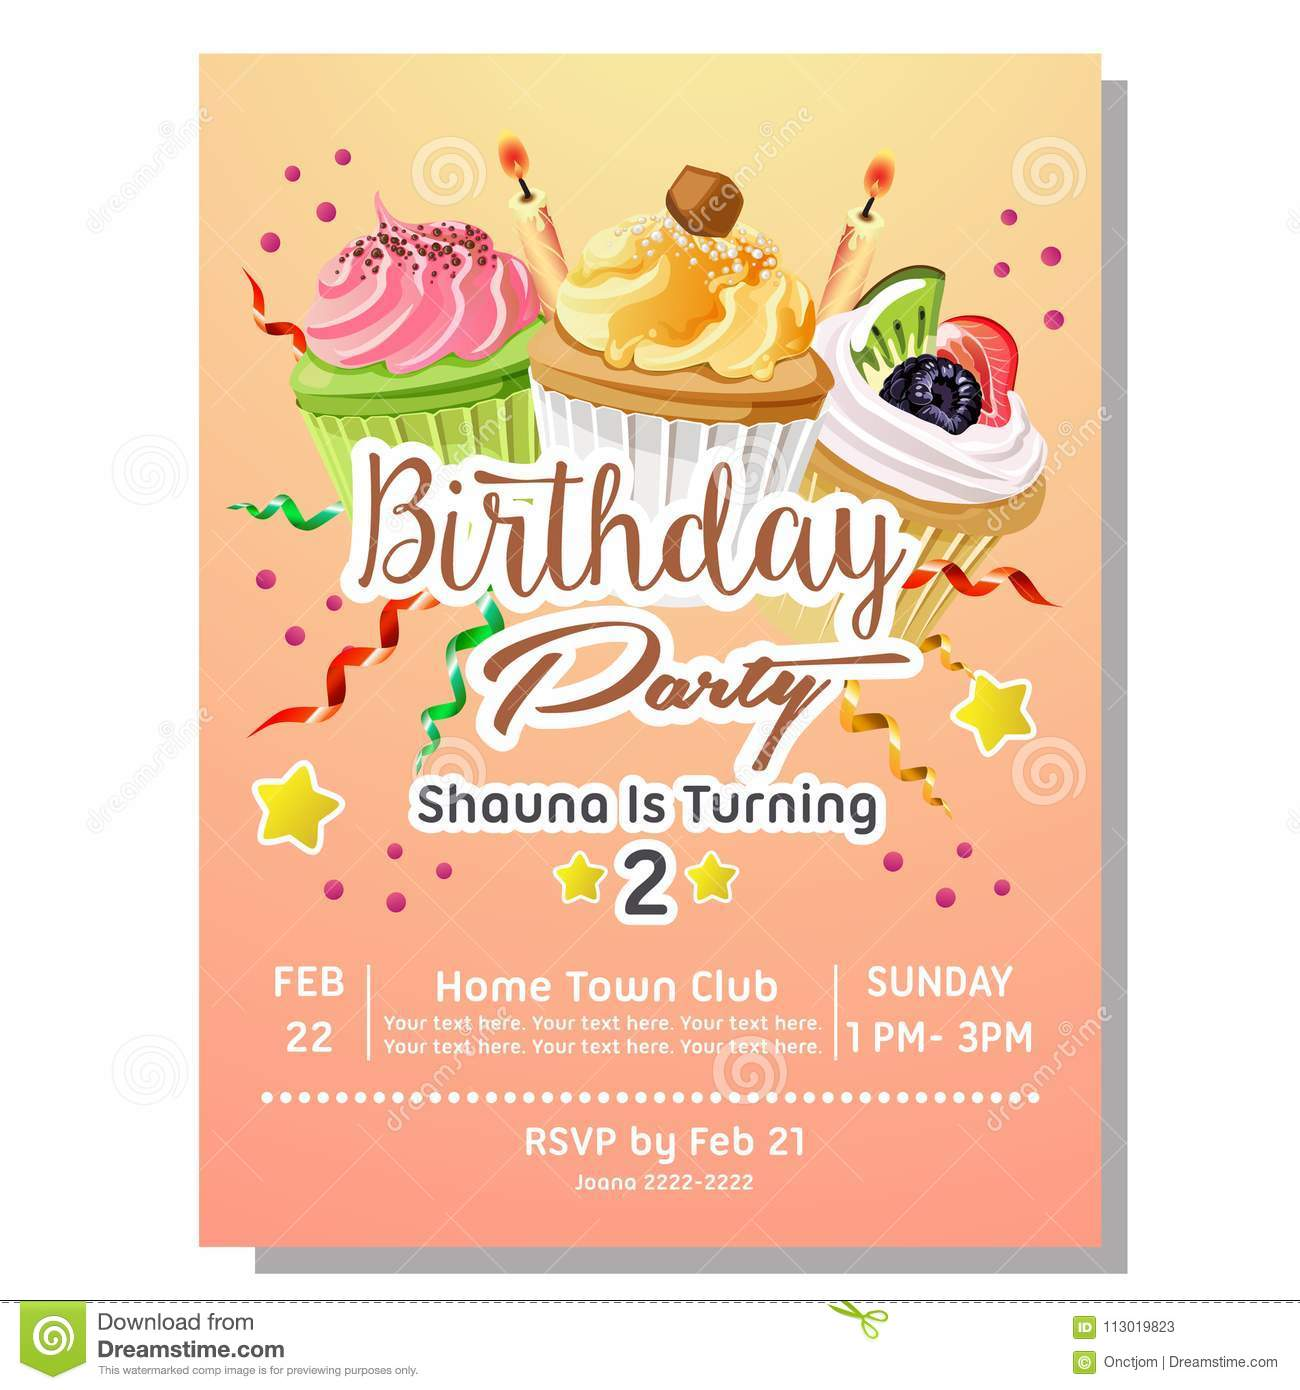 2nd Birthday Party Invitation Card Template With Delicious Cupcakes